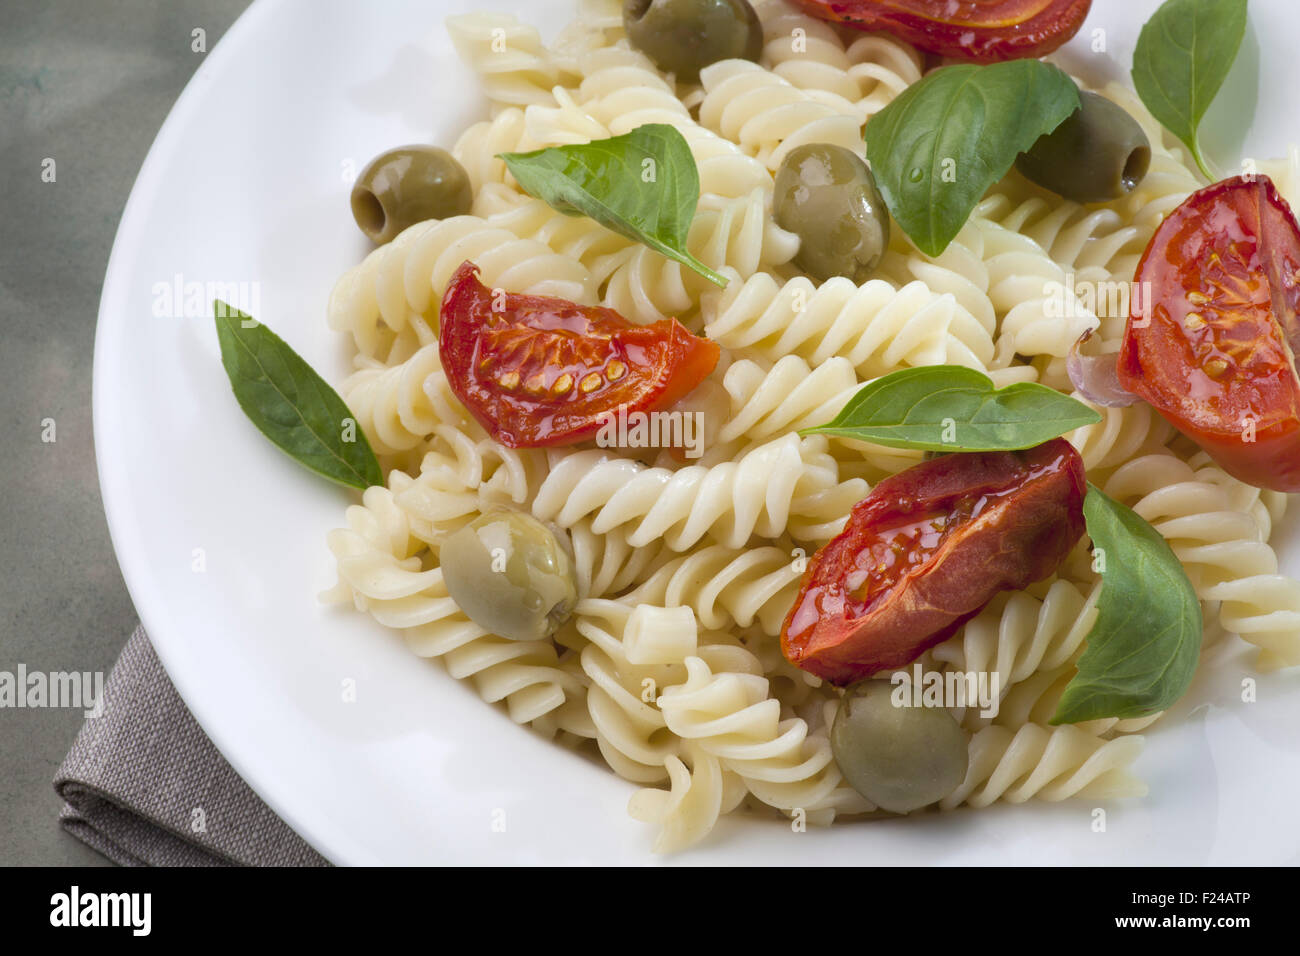 Pasta with baked tomatoes and green olives - Stock Image